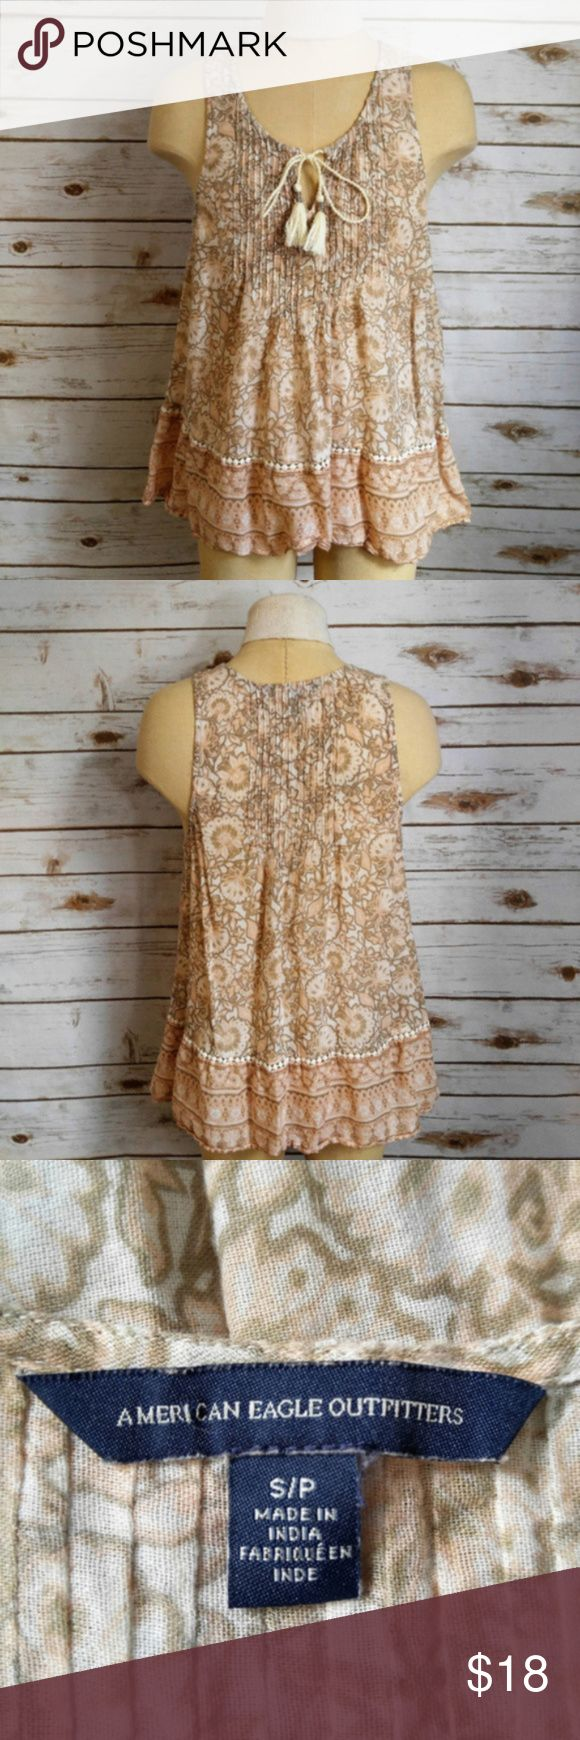 """AEO Cream Floral Cotton Boho Tank Top American Eagle Outfitters Cream Floral Cotton Boho Tank Top Materials: 100% Cotton Size: Small Measurements Laid Flat Bust: 18"""" Length: 23"""" Feel free to ask any questions, I can get back to you within 24 hours. American Eagle Outfitters Tops Tank Tops"""